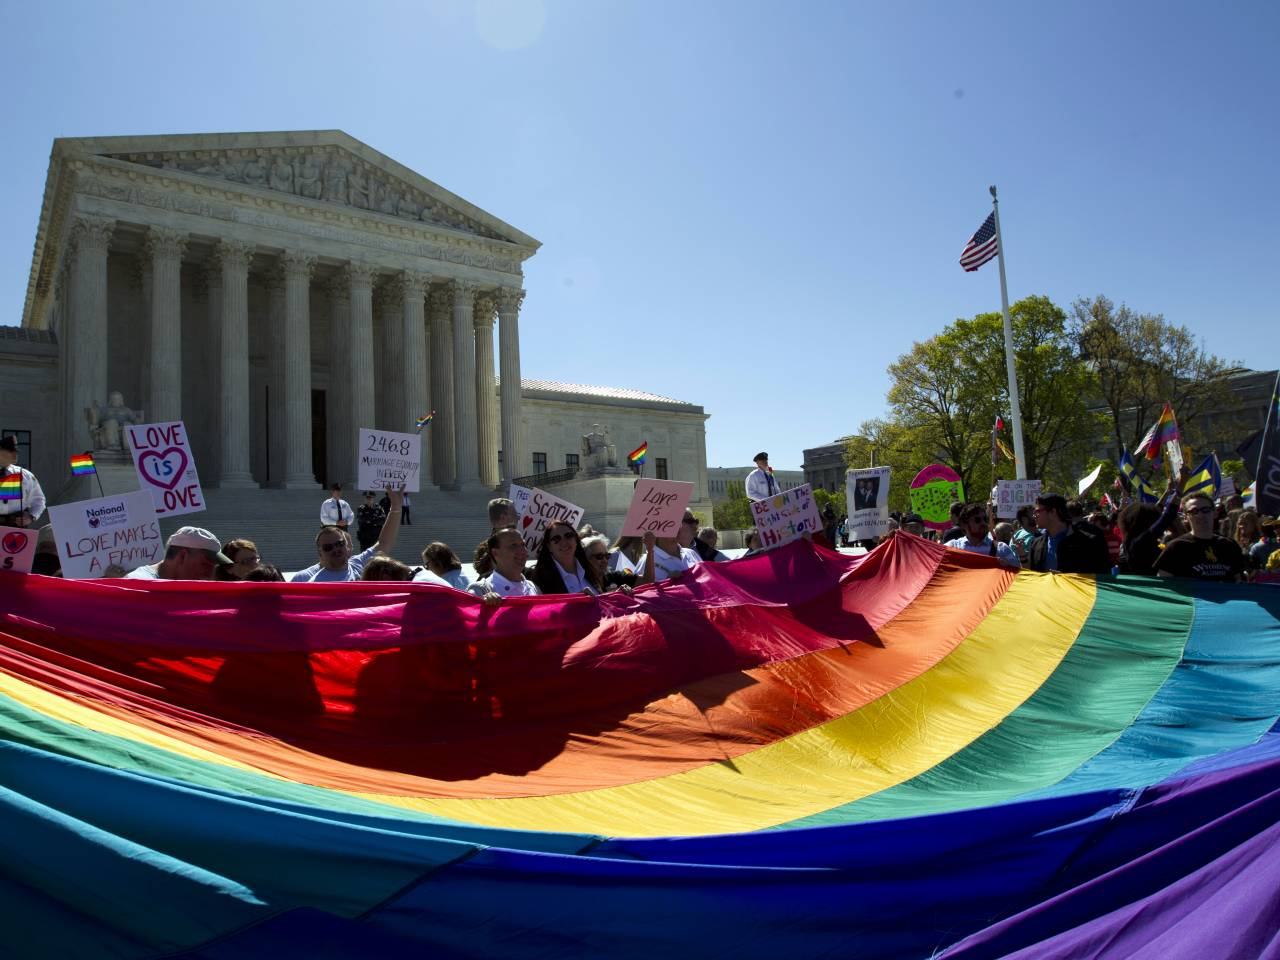 SCOTUS reached the historic ruling in a 5-4 decision with 4 dissents